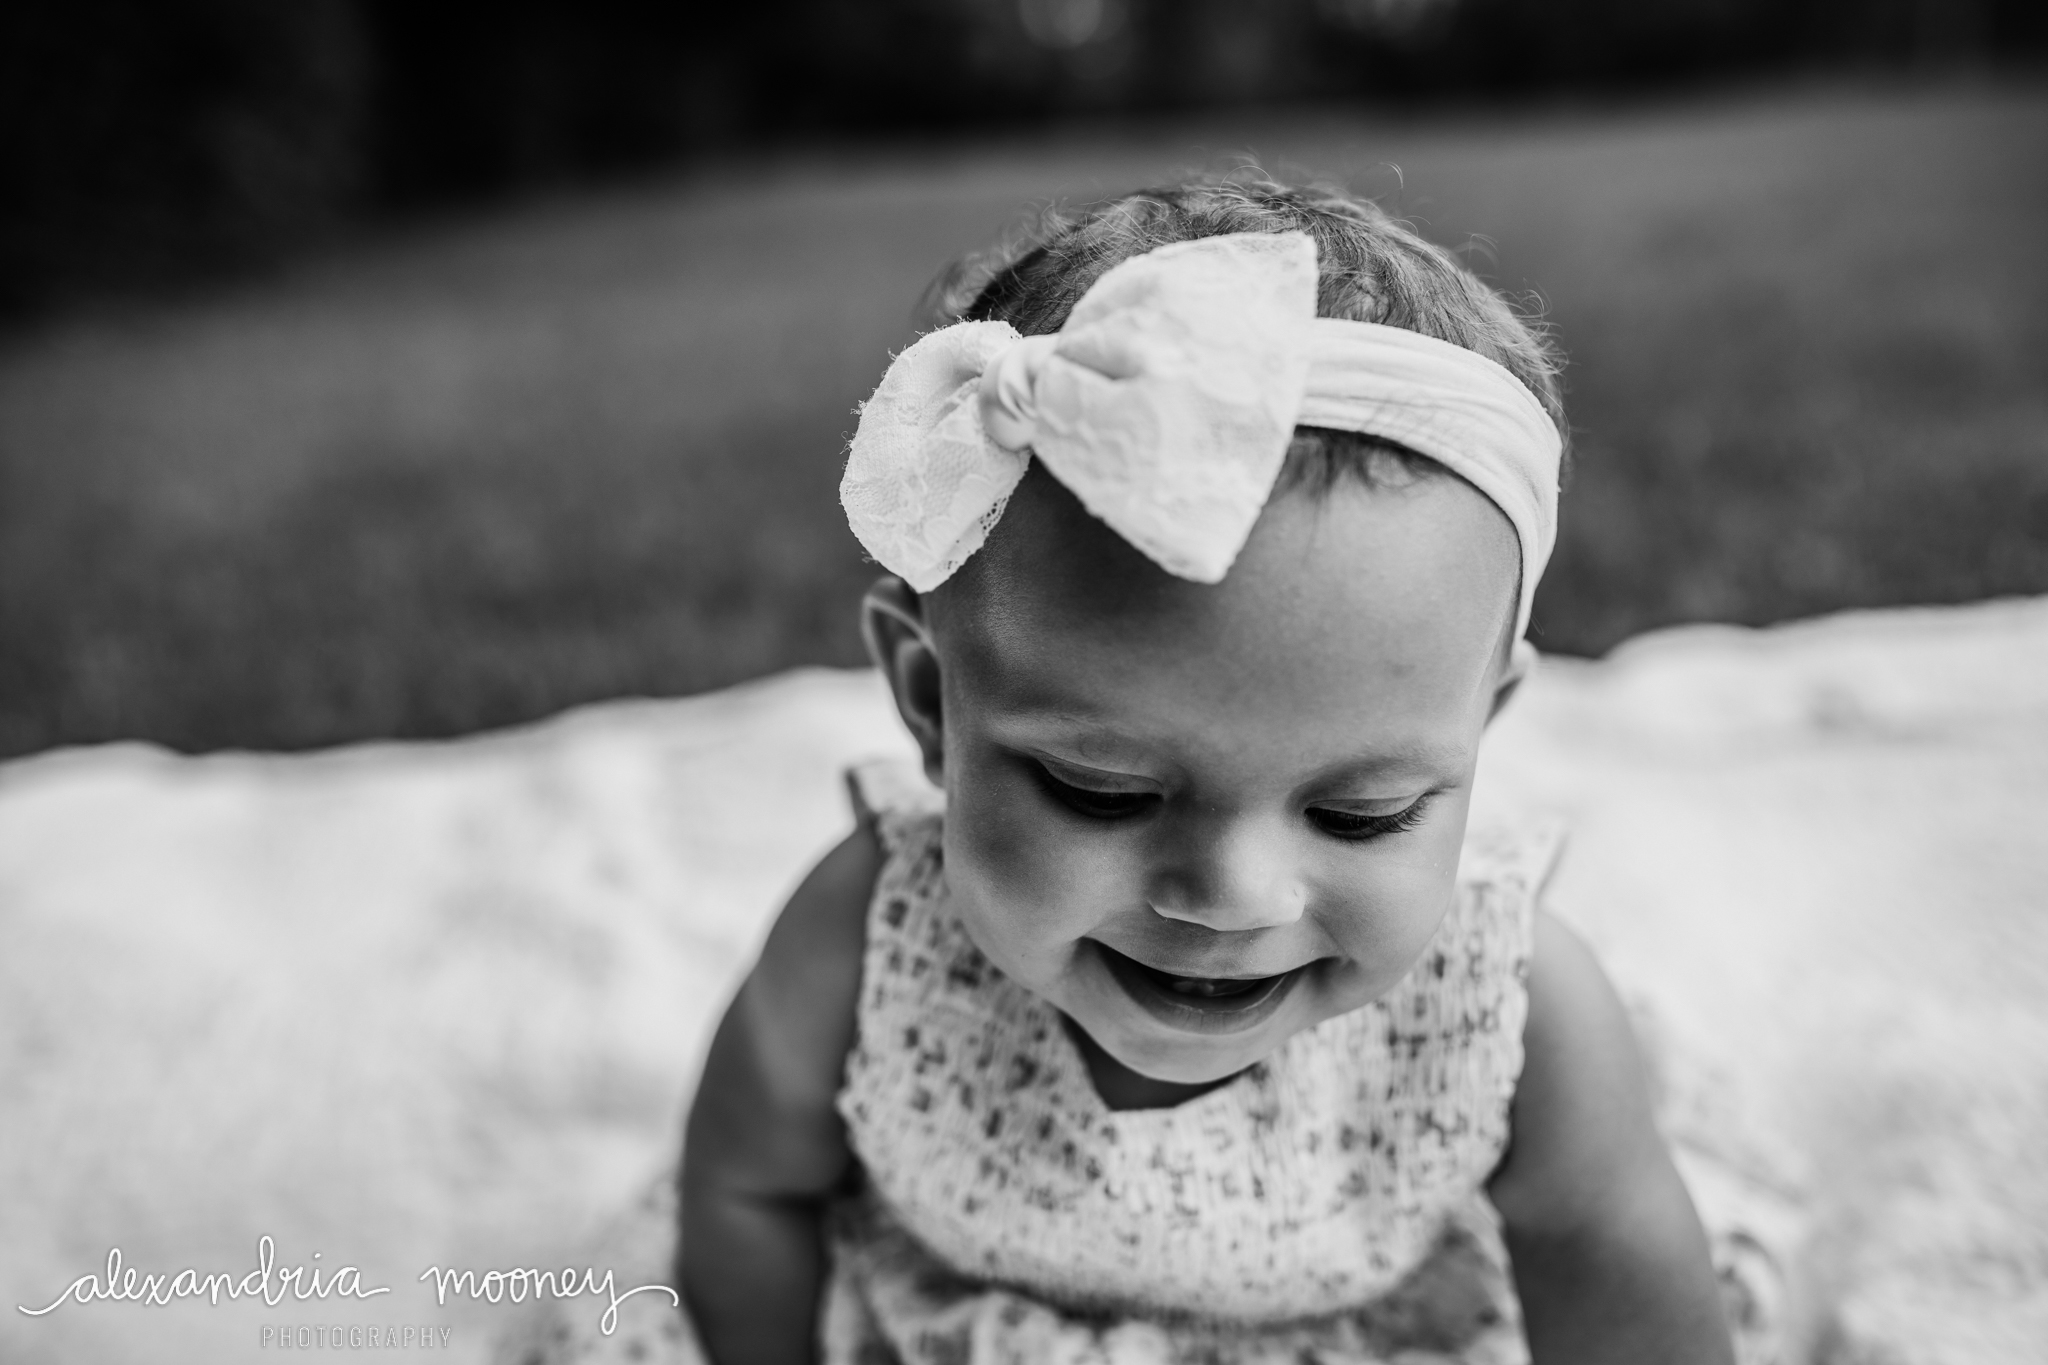 Lillian_9monthsold_WATERMARKED-8.jpg